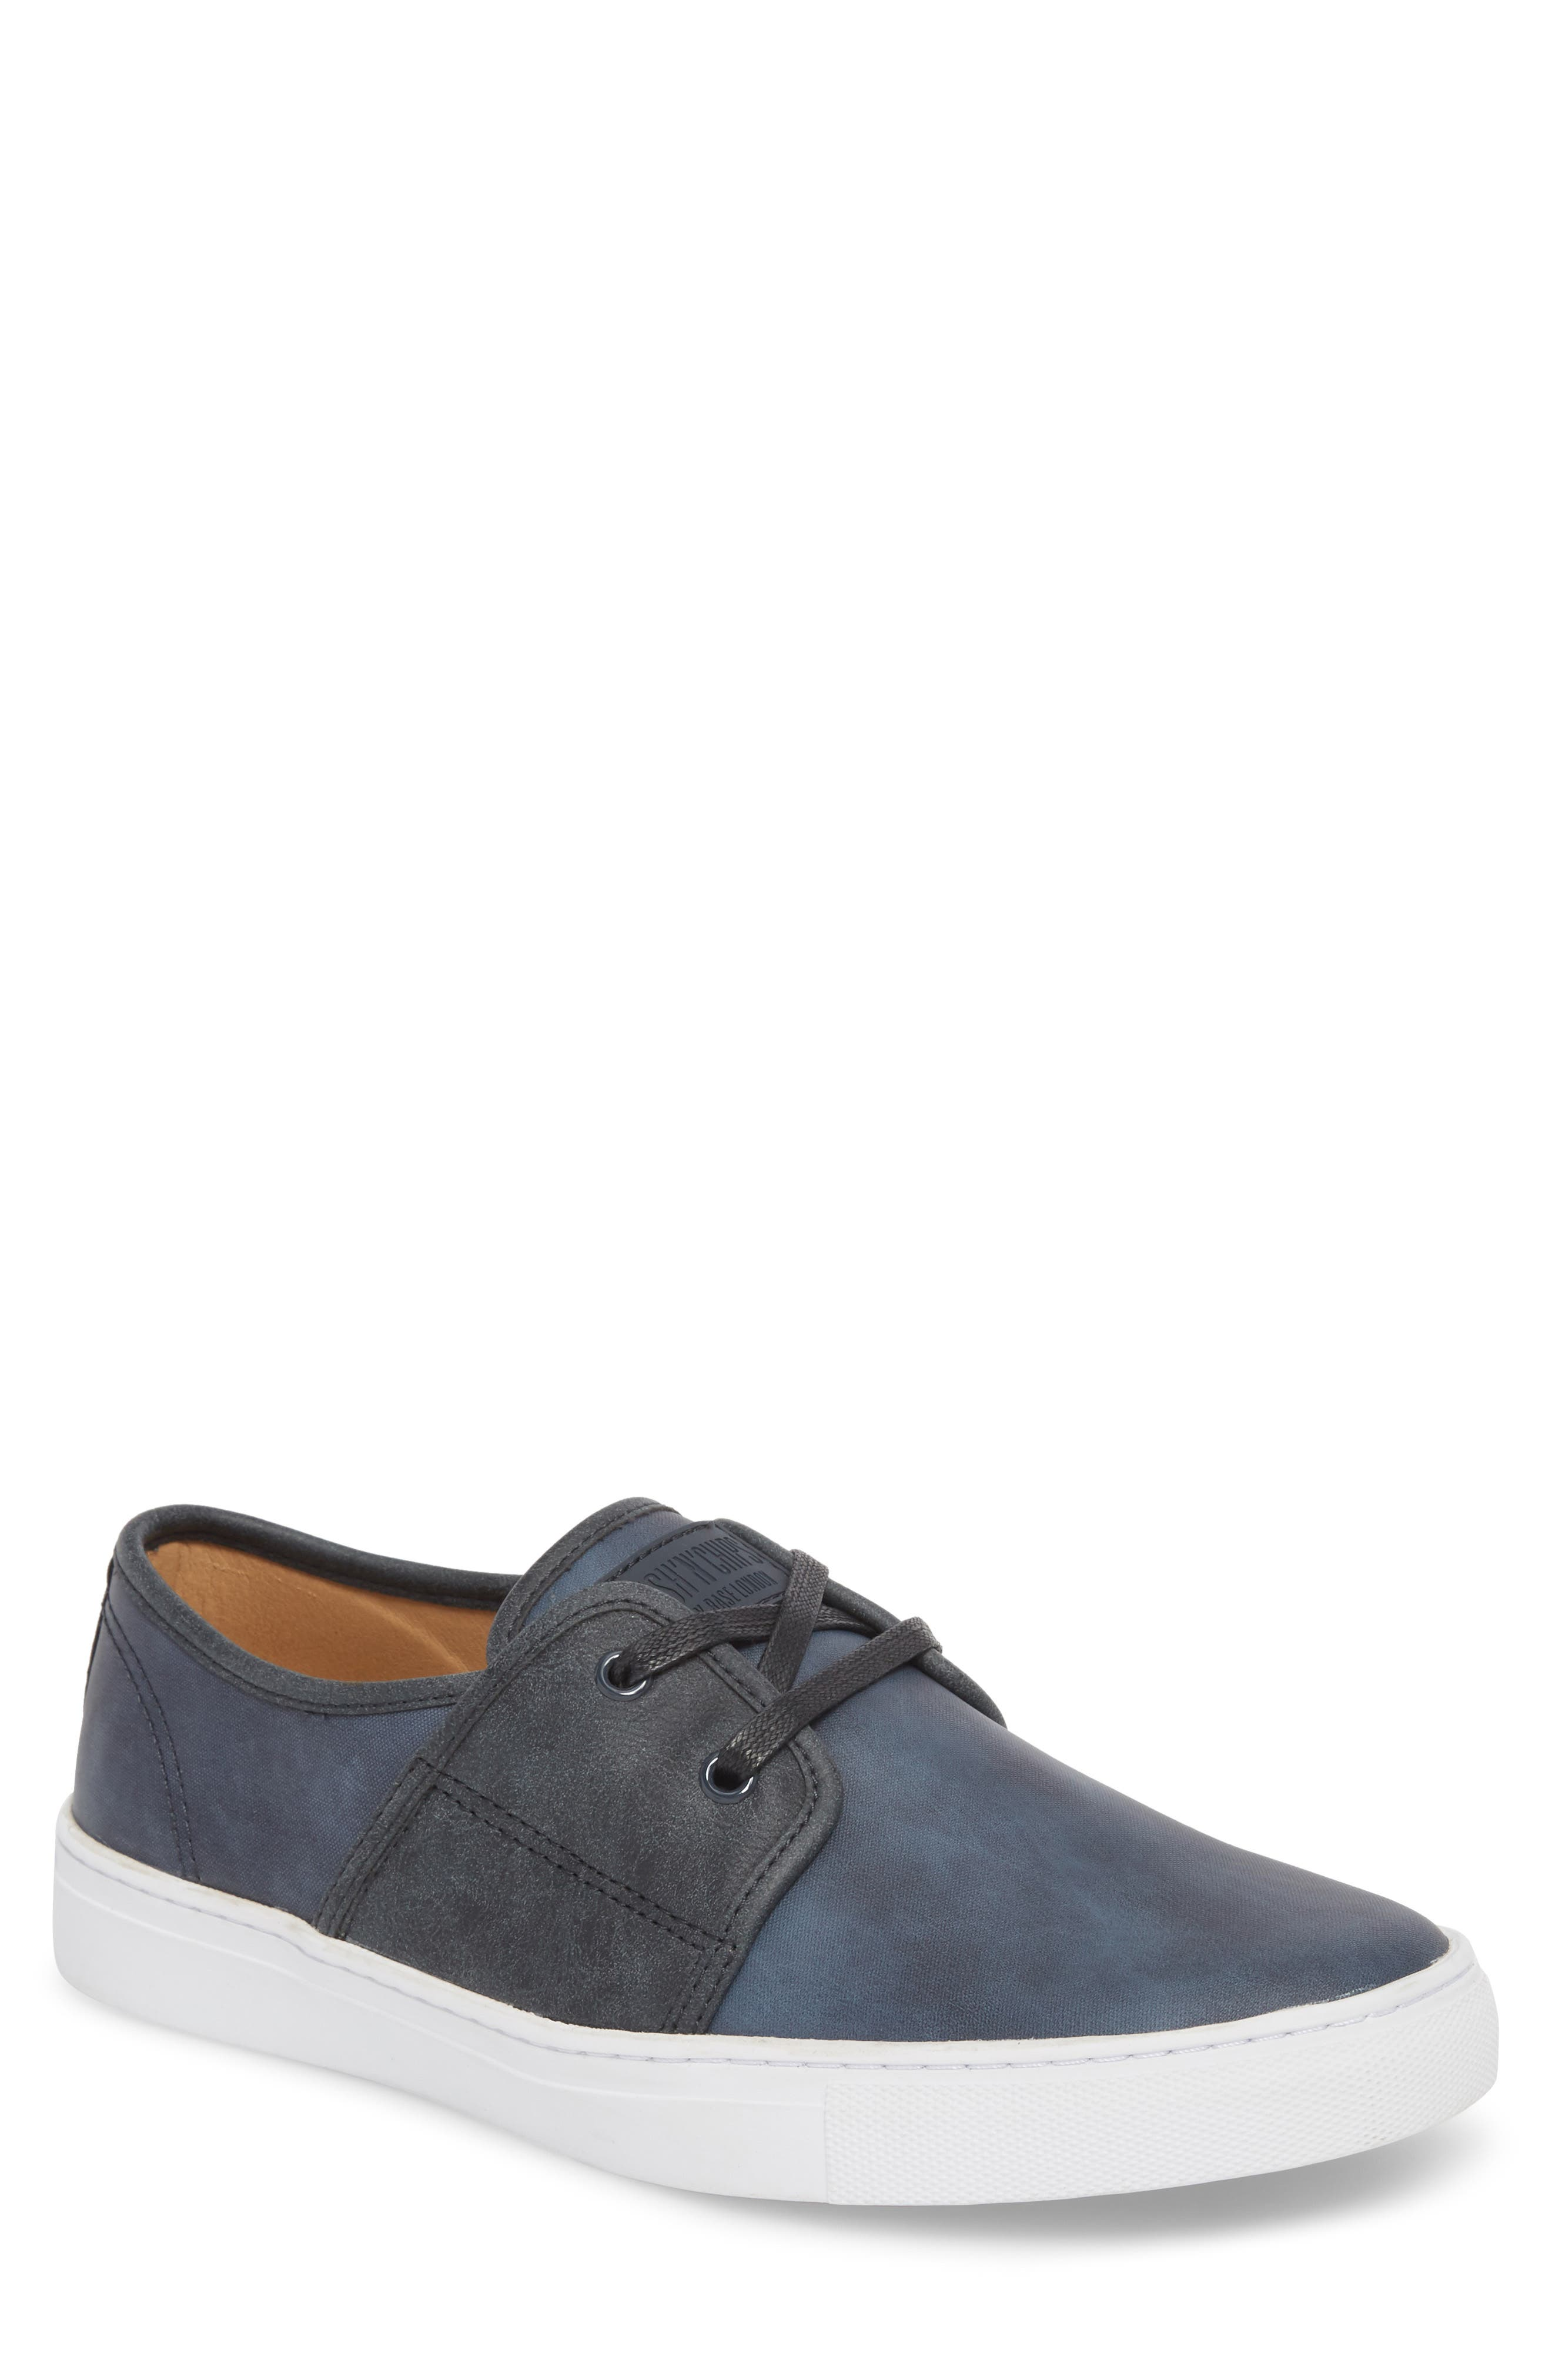 Toronto Low Top Sneaker,                             Main thumbnail 1, color,                             Navy Faux Suede